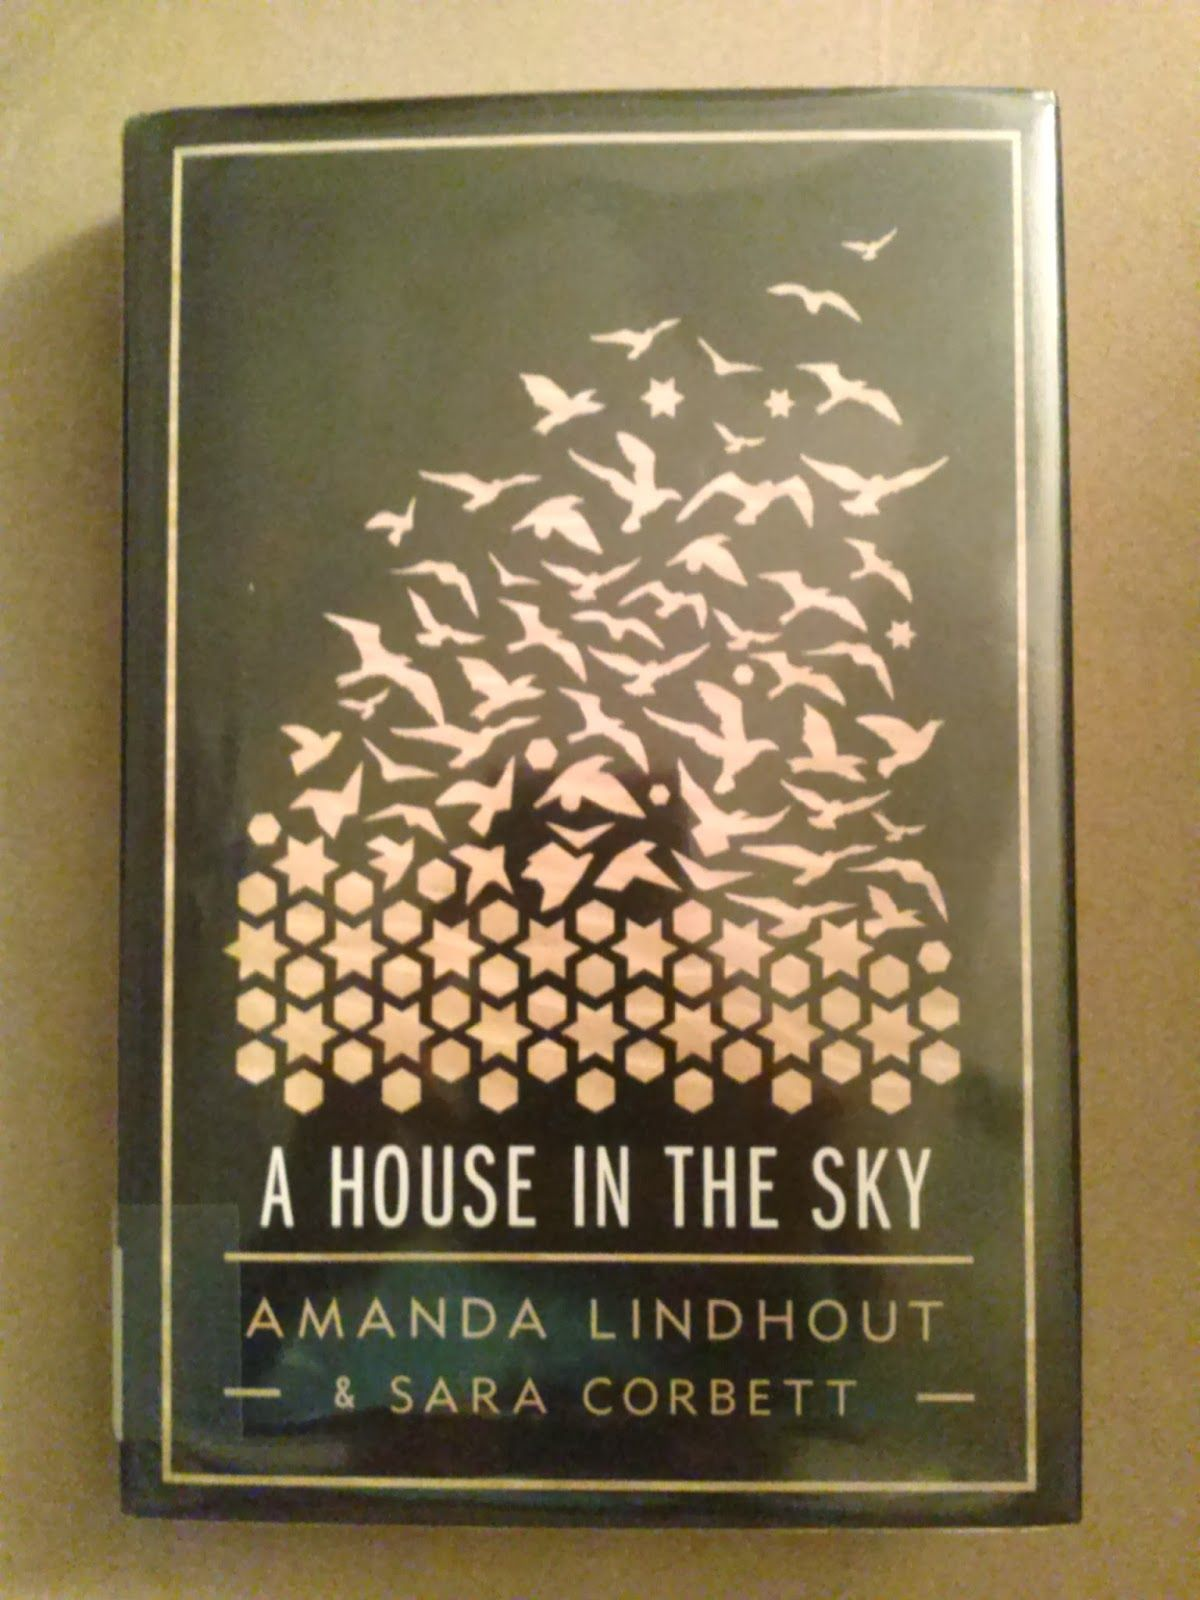 """Love.Bake.Read: """"A House in the Sky"""" by Amanda Lindhout and Sara Corbett http://lovebakeread.blogspot.com/2014/01/a-house-in-sky-by-amanda-lindhout-and.html"""